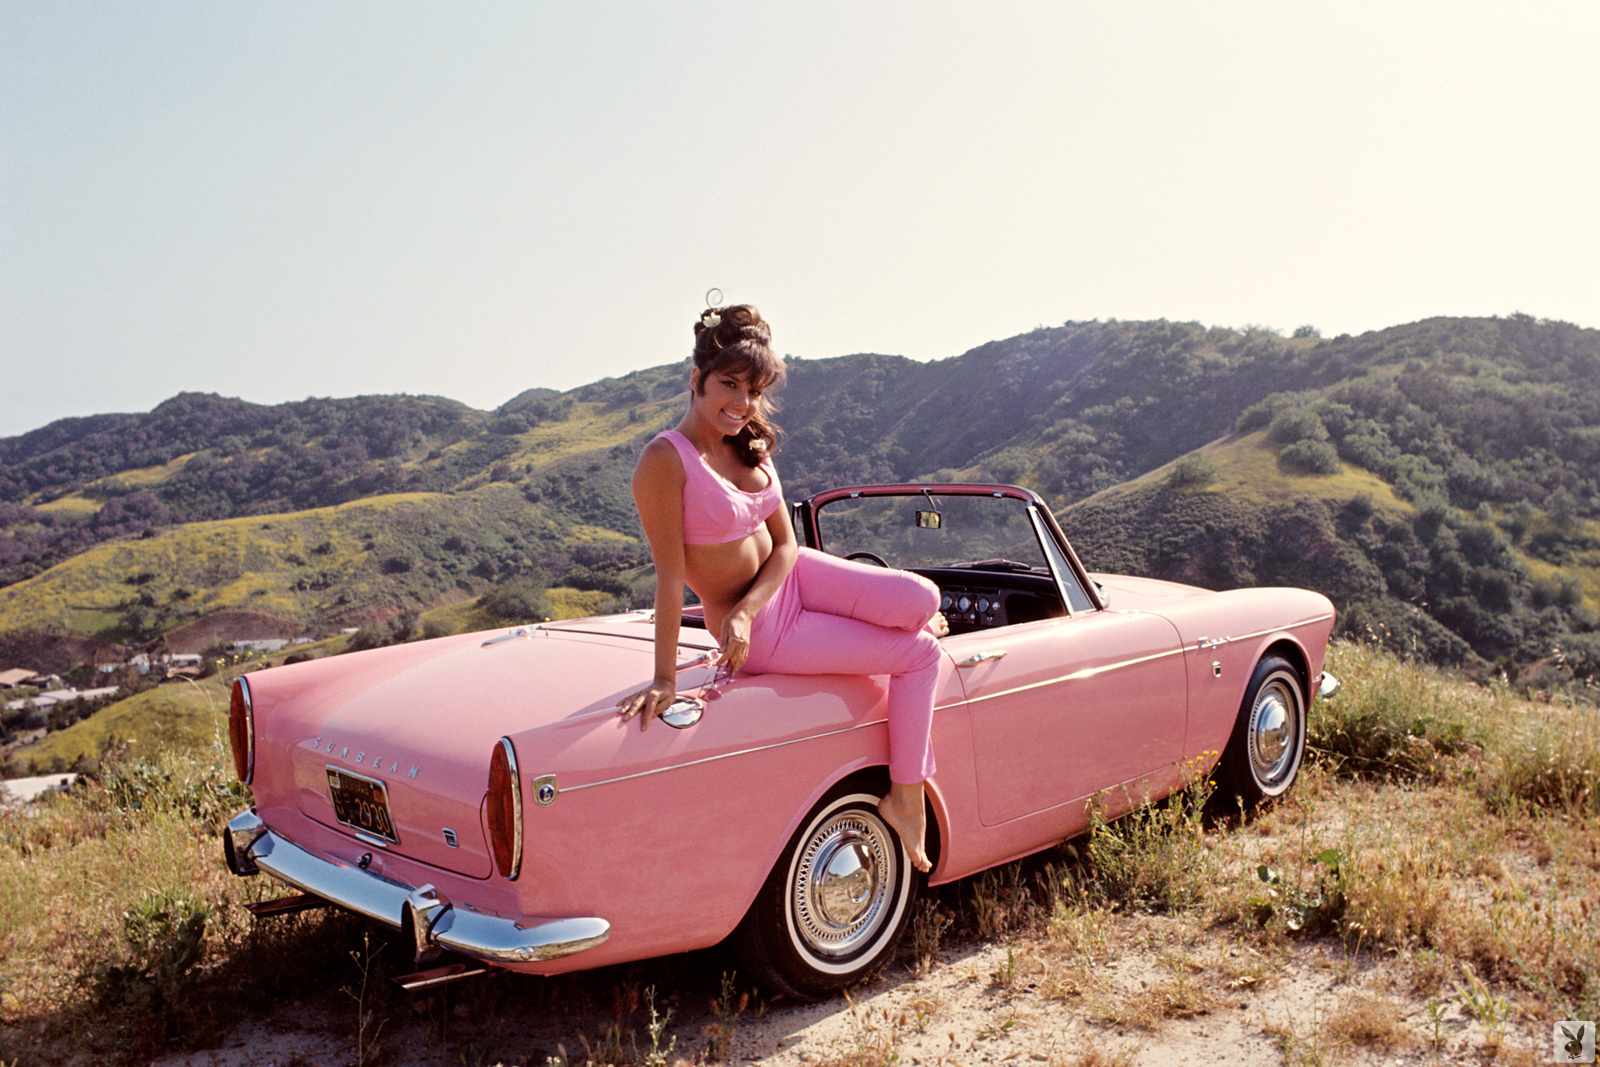 pink convertible on mountaintop with pinup girl in pink